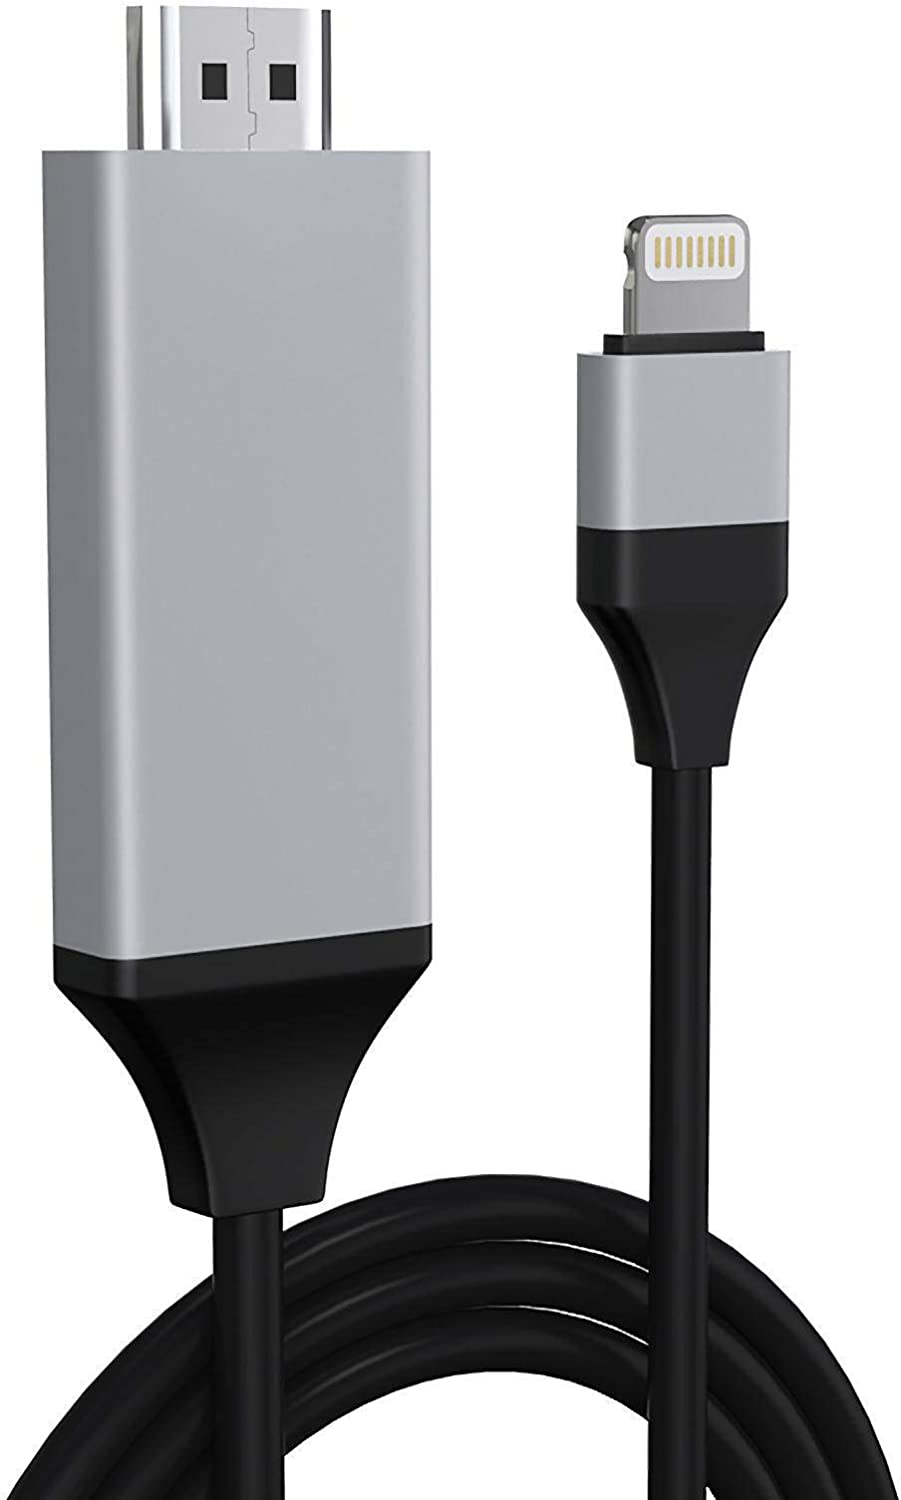 Apple MFi Certified Lightning to HDMI Cable Adapter for iPhone, 2K Digital AV Adapter HDTV Cable Connector Compatible with iPhone/iPad to TV Projector Monitor - No Need Power Supply (6.6ft Black)